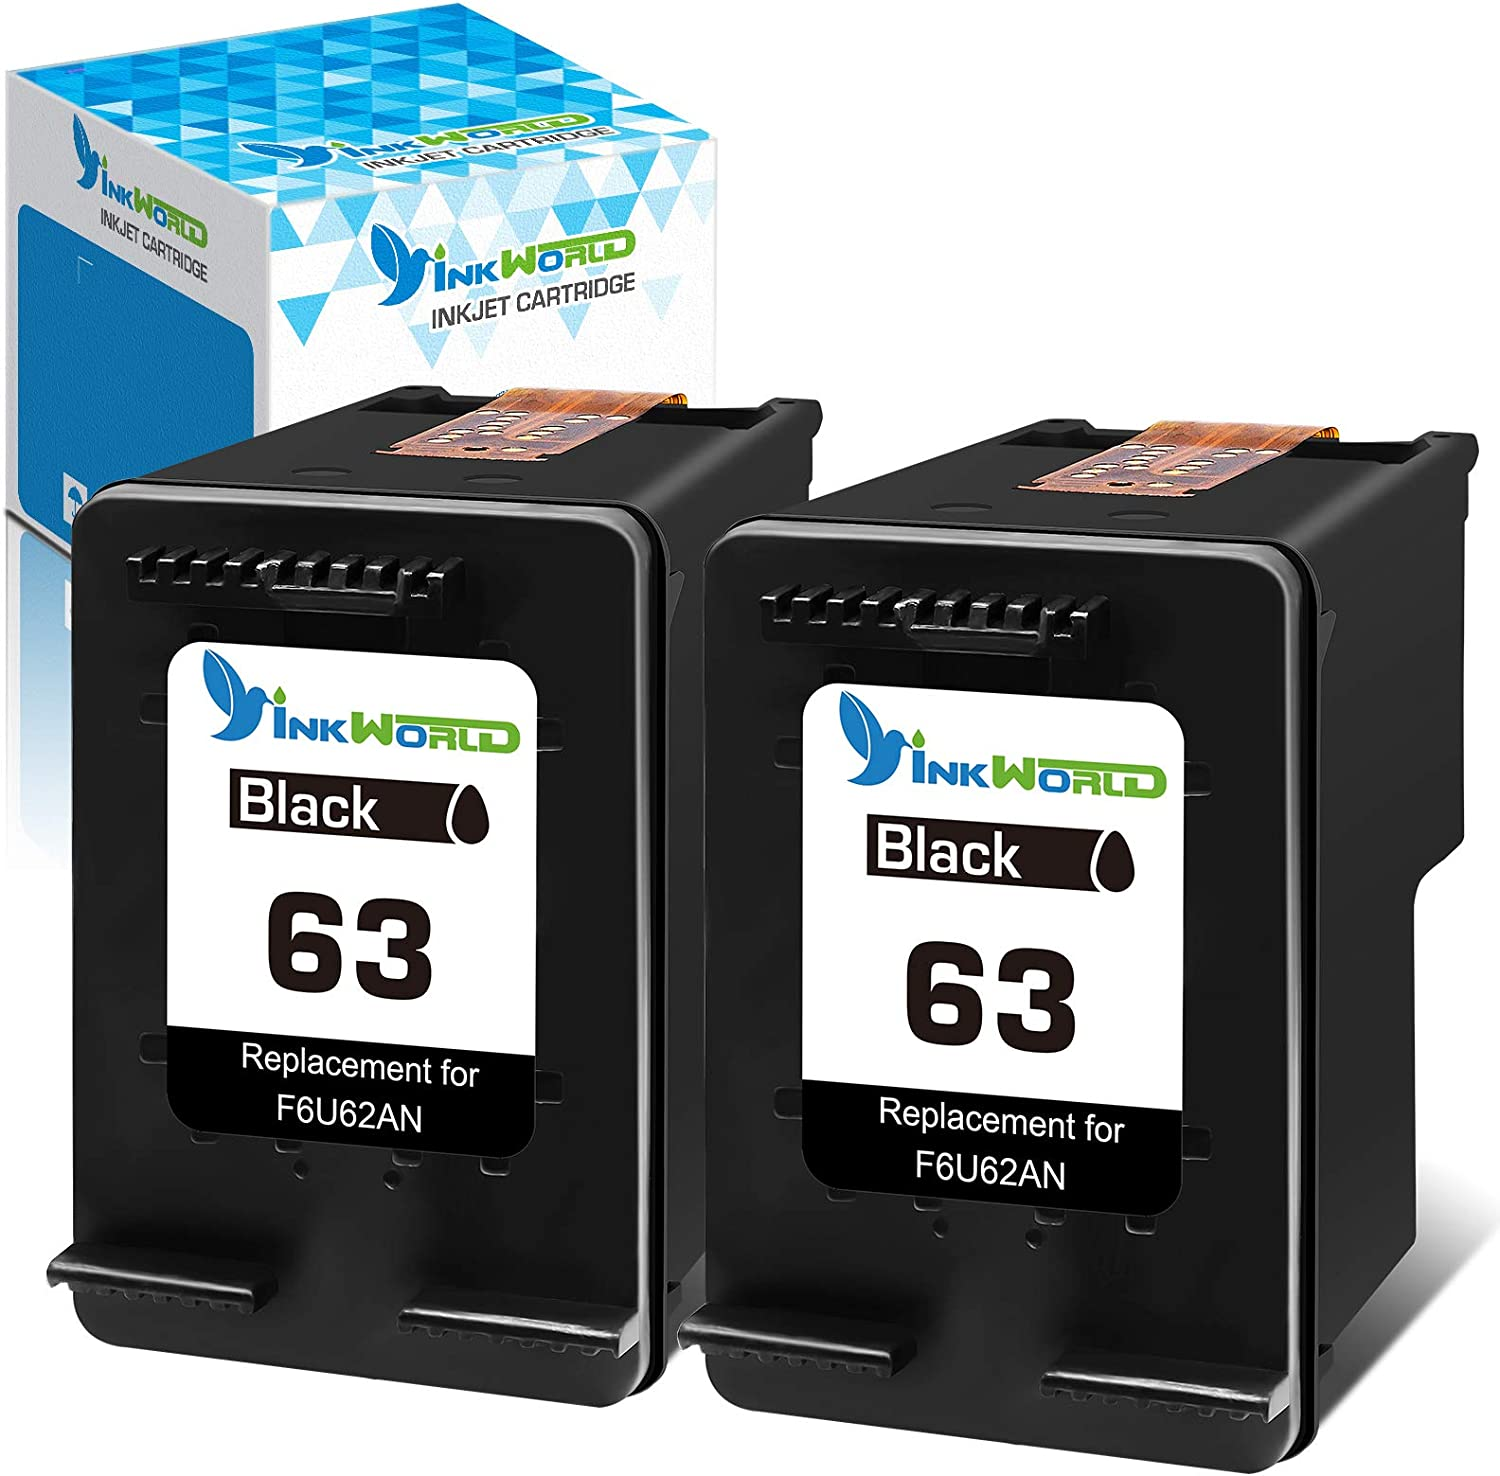 InkWorld Remanufactured 63 Ink Cartridge Replacement for HP 63XL Twin Black Used for Envy 4510 4520 3634 OfficeJet 3830 5252 4650 5258 4655 4652 5255 DeskJet 2130 3636 1111 3630 1112 3637 3632 Printer